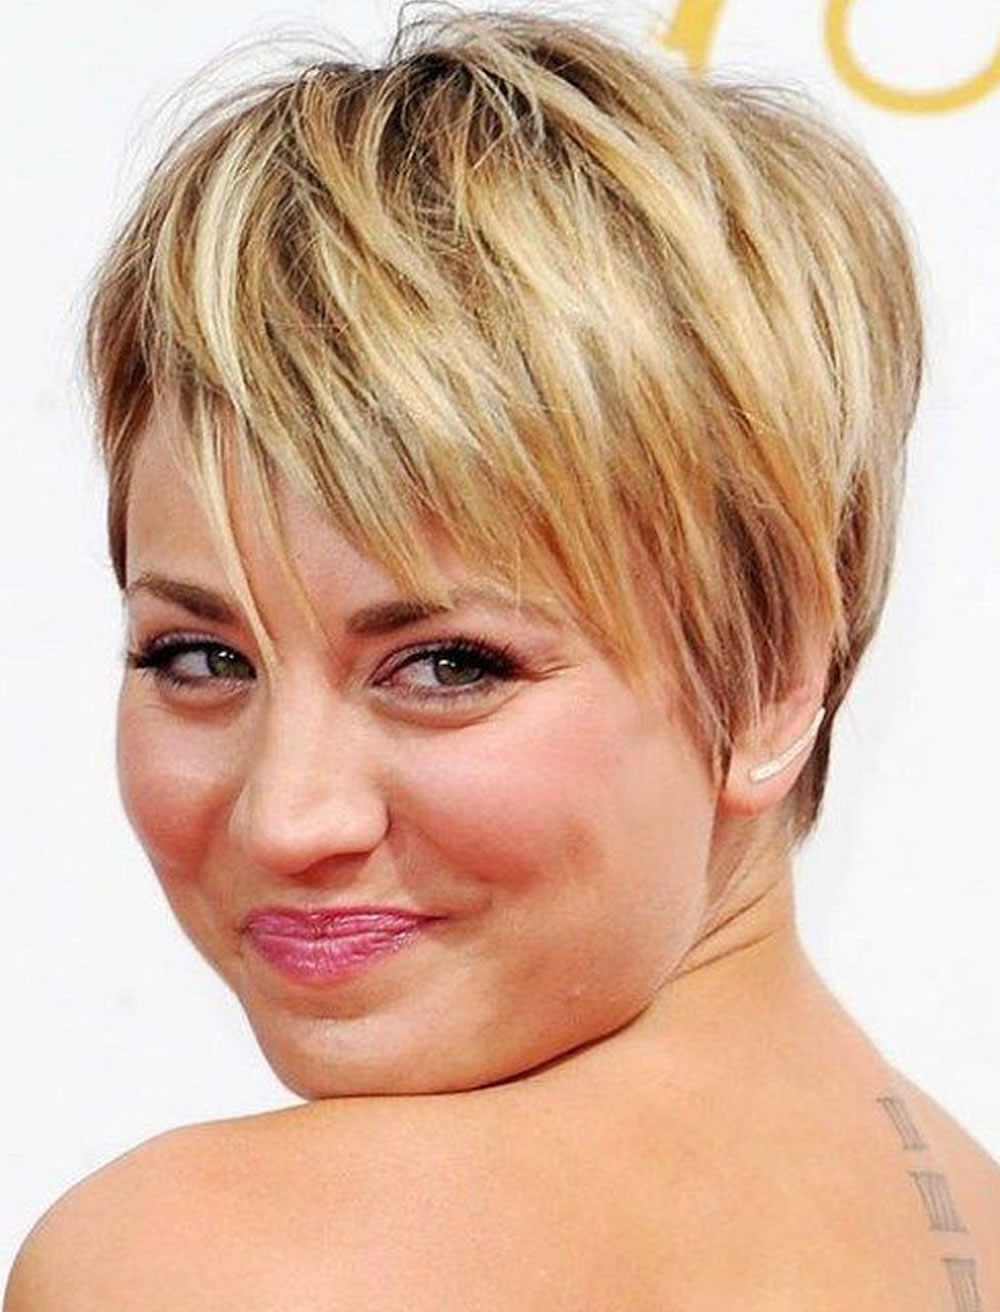 Explore Gallery Of Pixie Hairstyles For Chubby Face Showing 14 Of